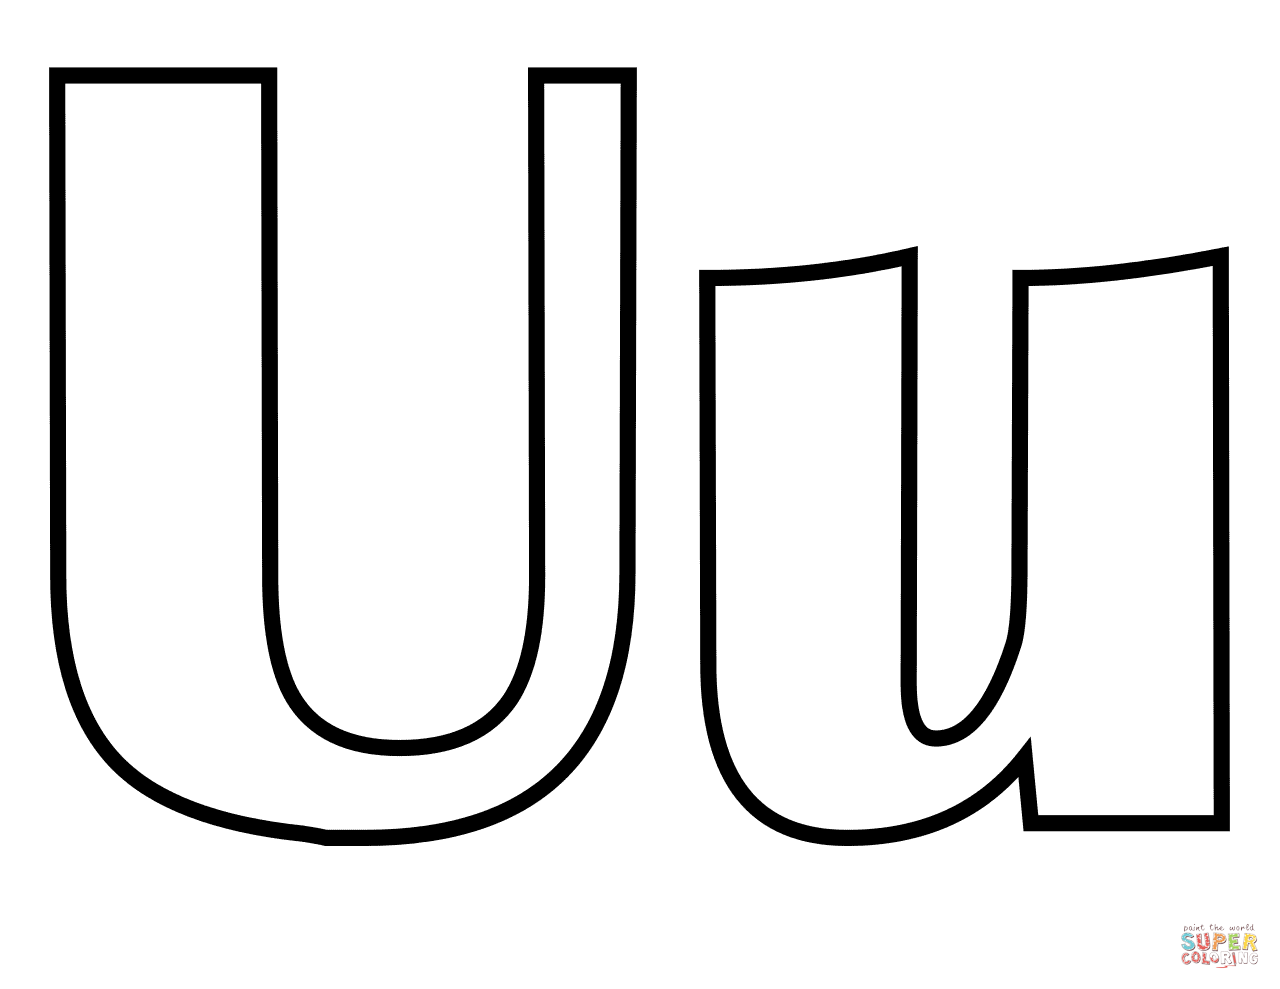 Classic Letter U Coloring Page Free Printable Coloring Pages Lettering Coloring Pages Printable Coloring Pages